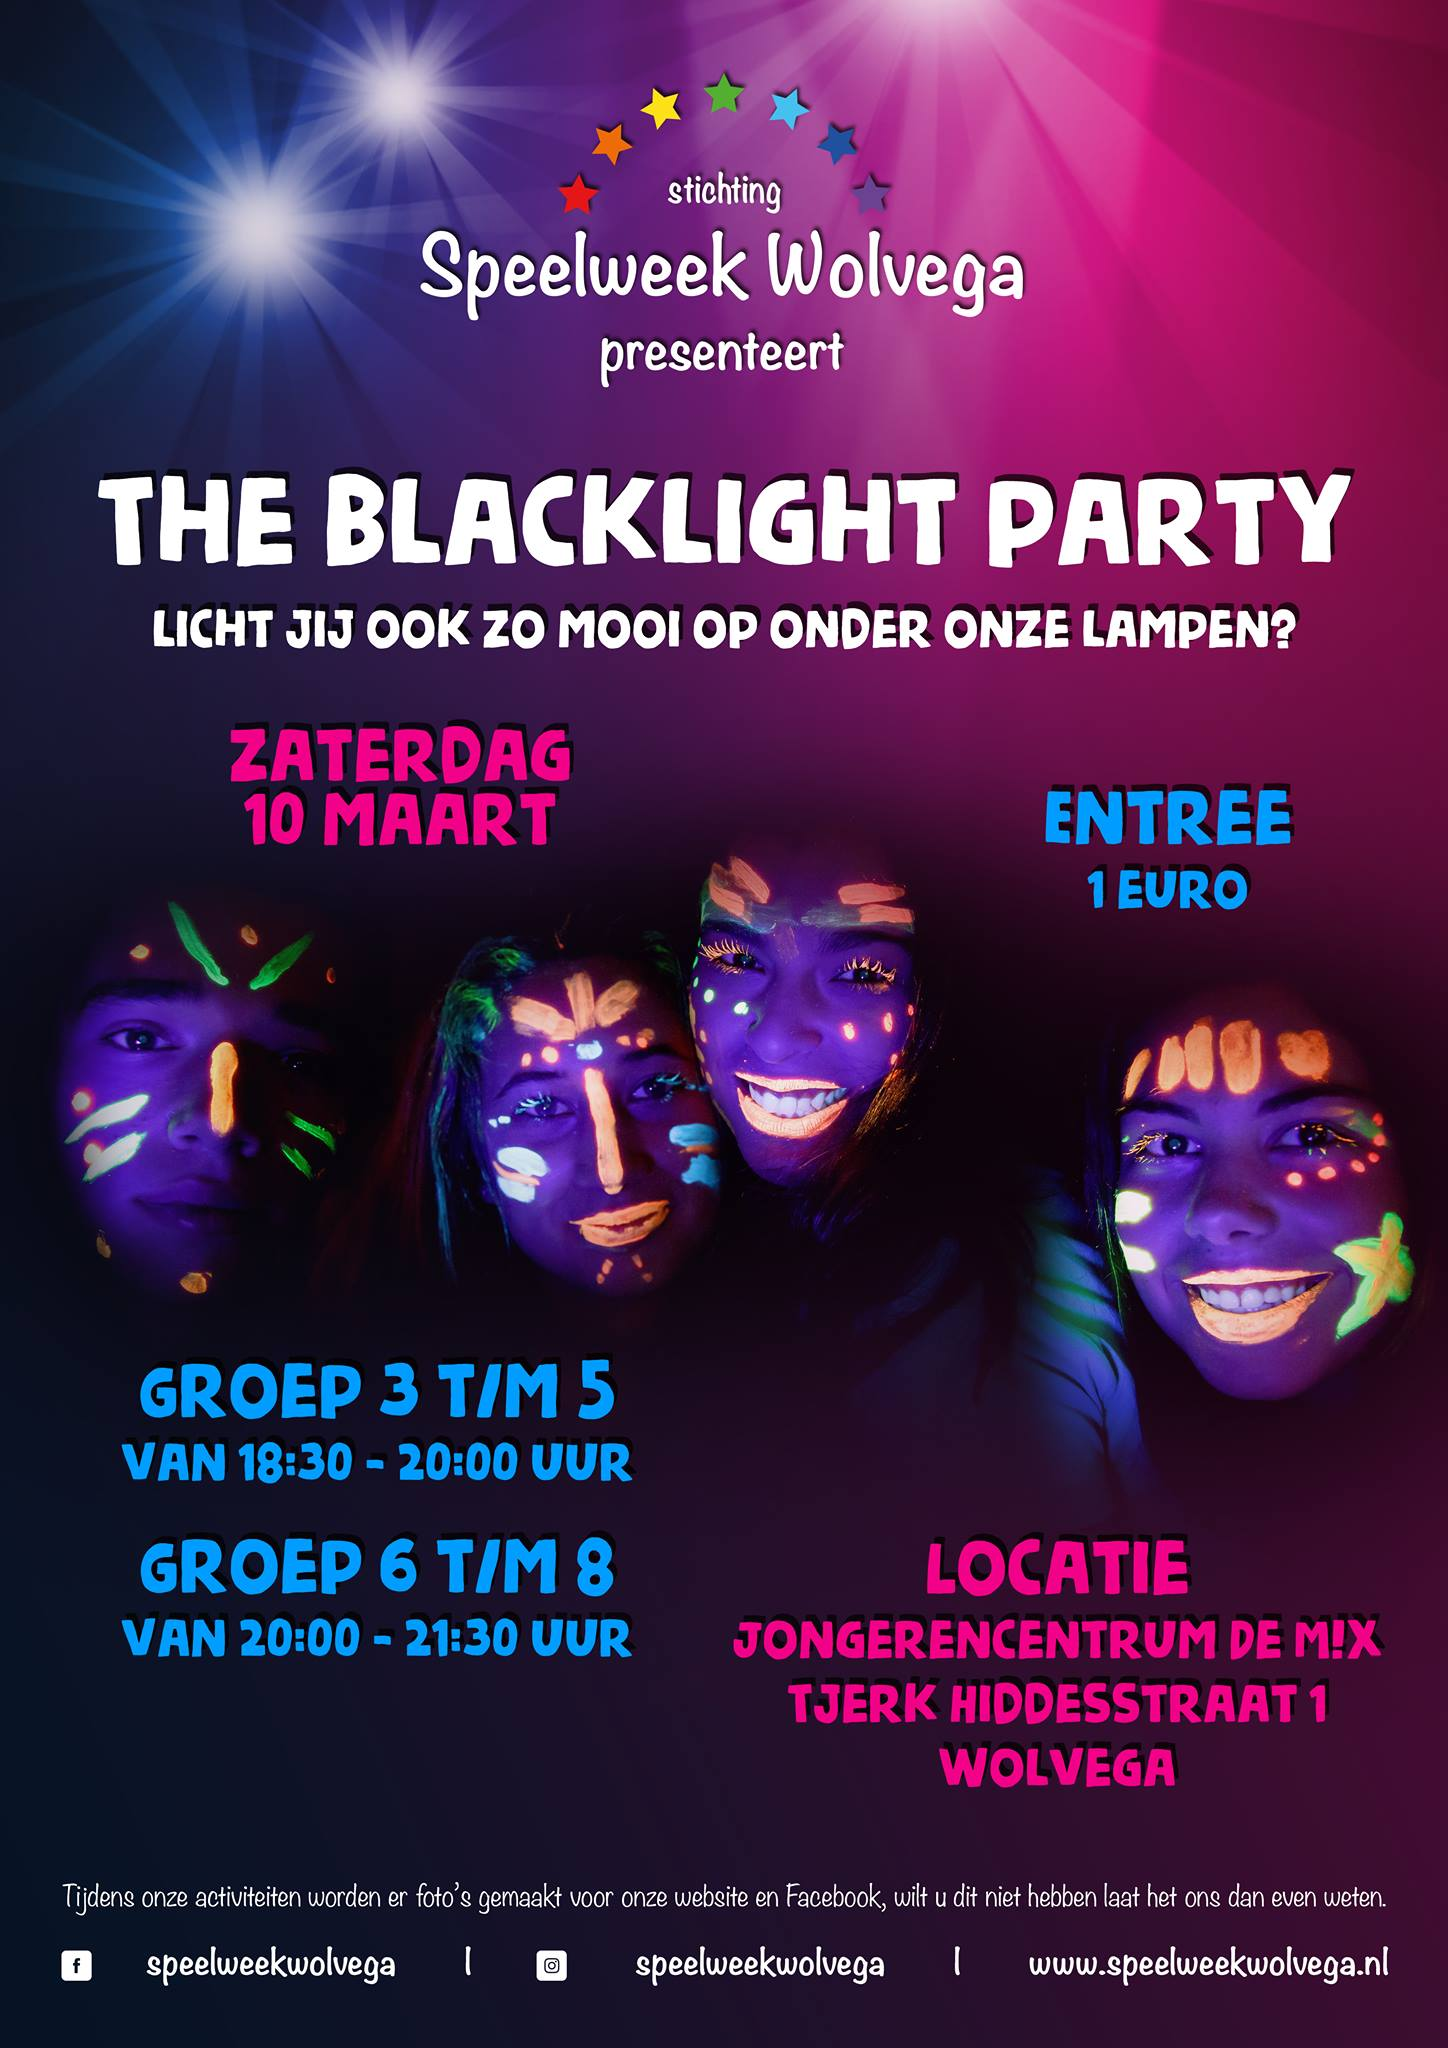 The Blacklight Party | Speelweek Wolvega